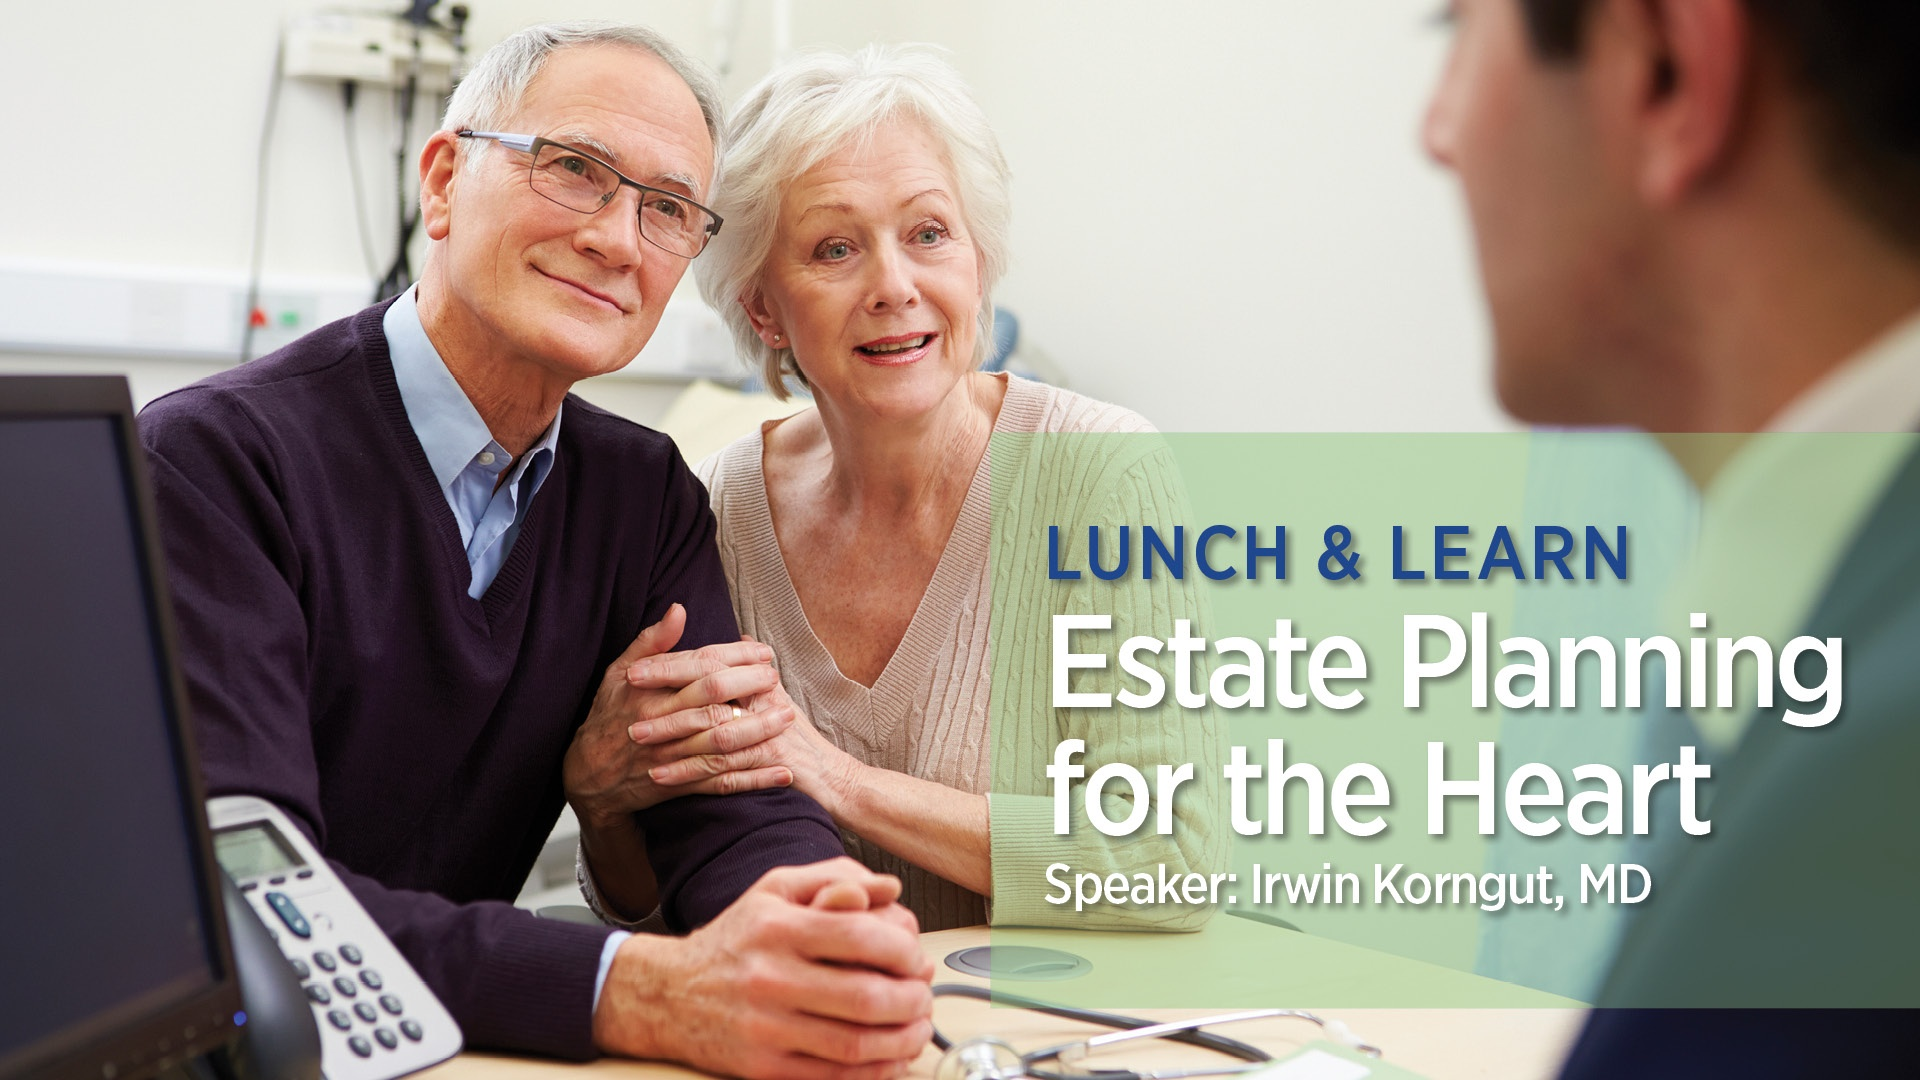 Estate planning for the heart